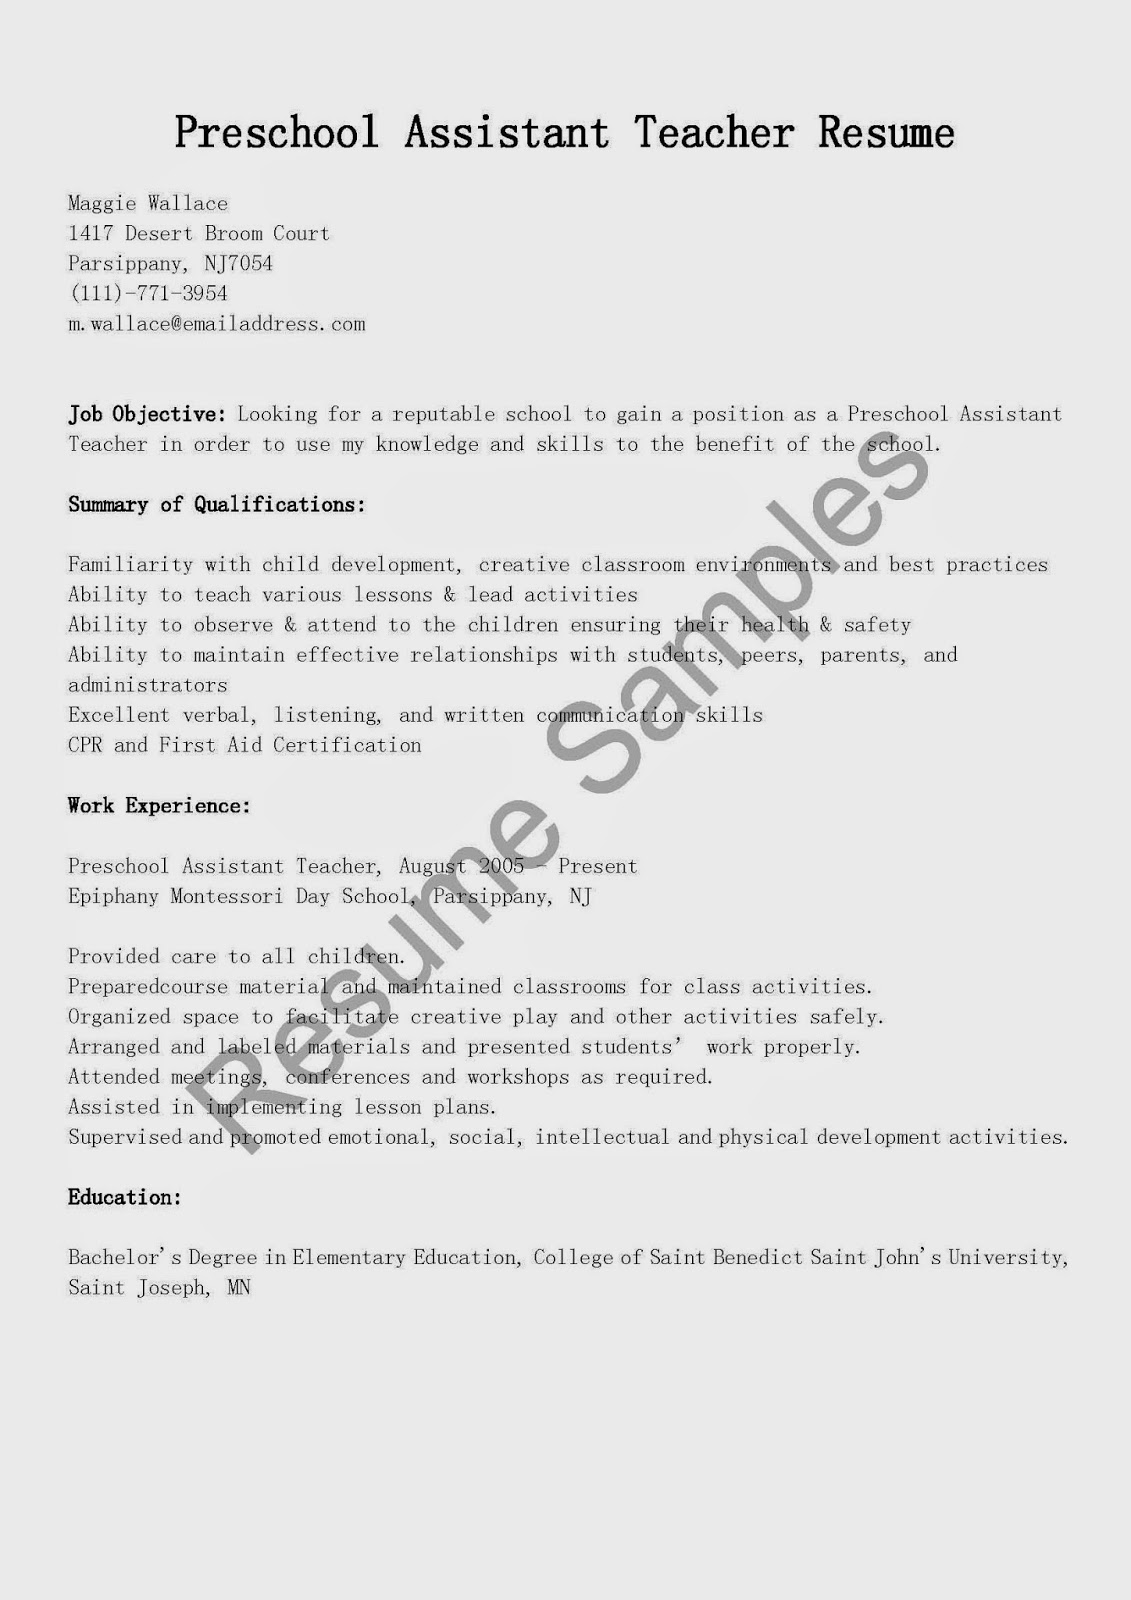 Sample Resume For Assistant Teacher Resume For Teachers Post Teacher Resumes  Best Sample Resume Sample Teacher